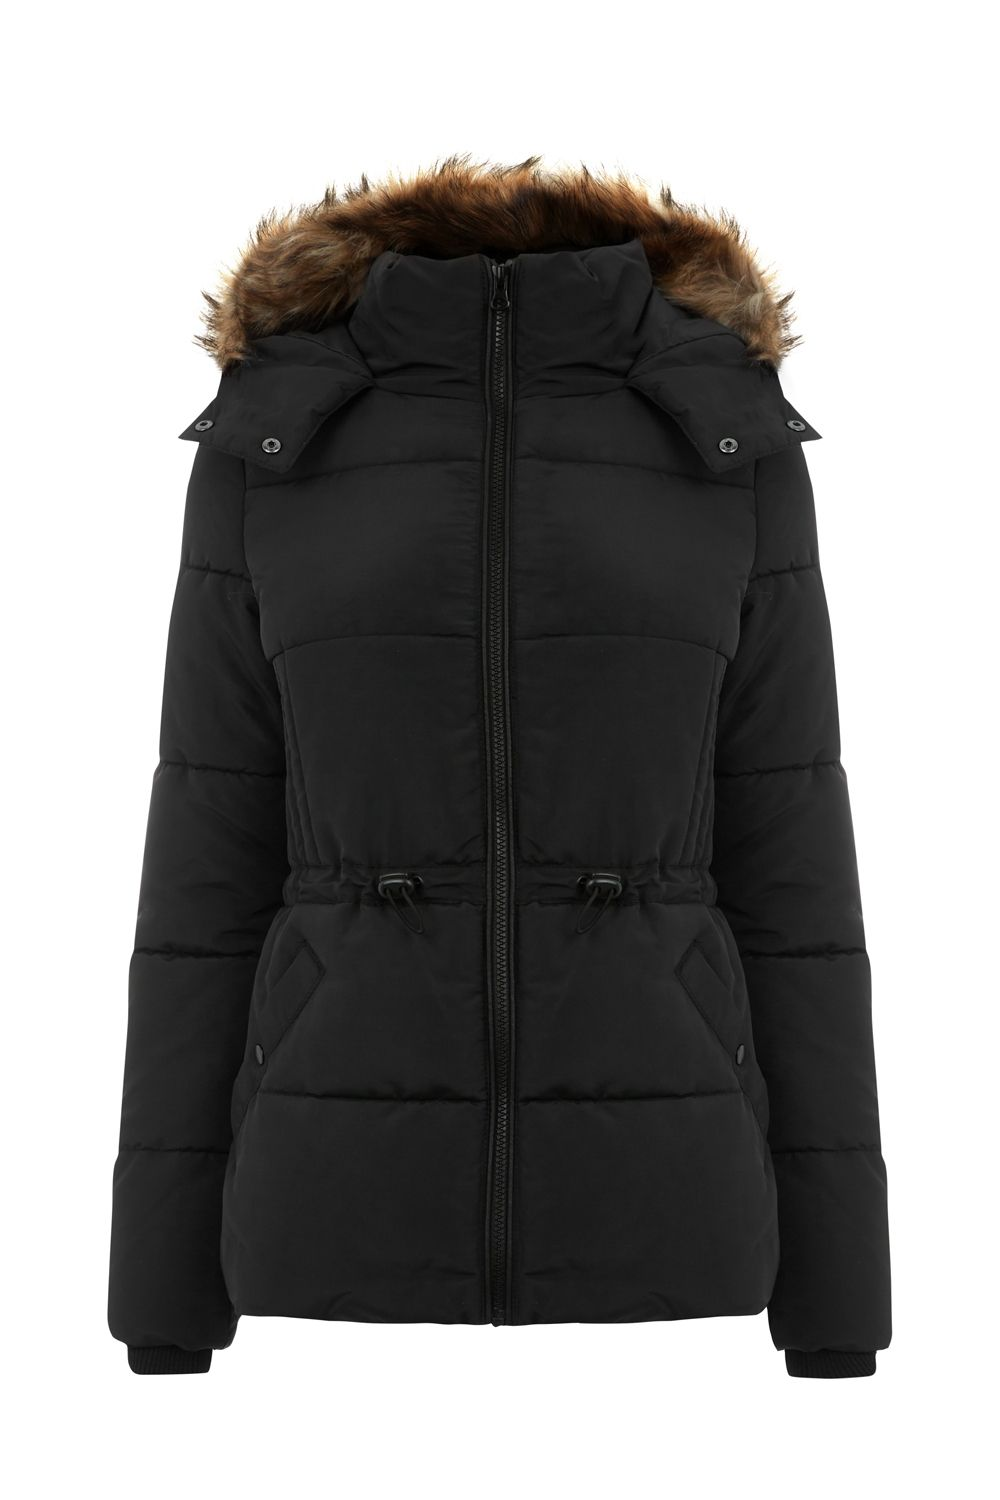 Oasis Sporty Padded Jacket, Black